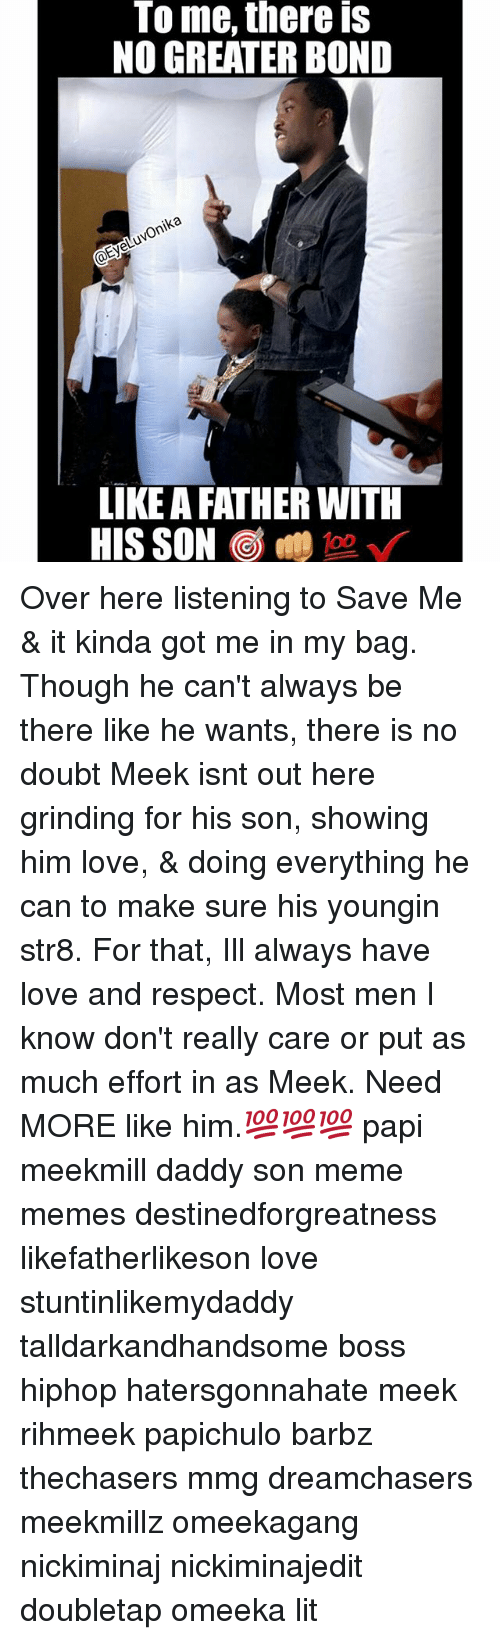 Dreamchasers: To me, there is  NO GREATER BOND  ka  LIKE A FATHER WITH Over here listening to Save Me & it kinda got me in my bag. Though he can't always be there like he wants, there is no doubt Meek isnt out here grinding for his son, showing him love, & doing everything he can to make sure his youngin str8. For that, Ill always have love and respect. Most men I know don't really care or put as much effort in as Meek. Need MORE like him.💯💯💯 papi meekmill daddy son meme memes destinedforgreatness likefatherlikeson love stuntinlikemydaddy talldarkandhandsome boss hiphop hatersgonnahate meek rihmeek papichulo barbz thechasers mmg dreamchasers meekmillz omeekagang nickiminaj nickiminajedit doubletap omeeka lit